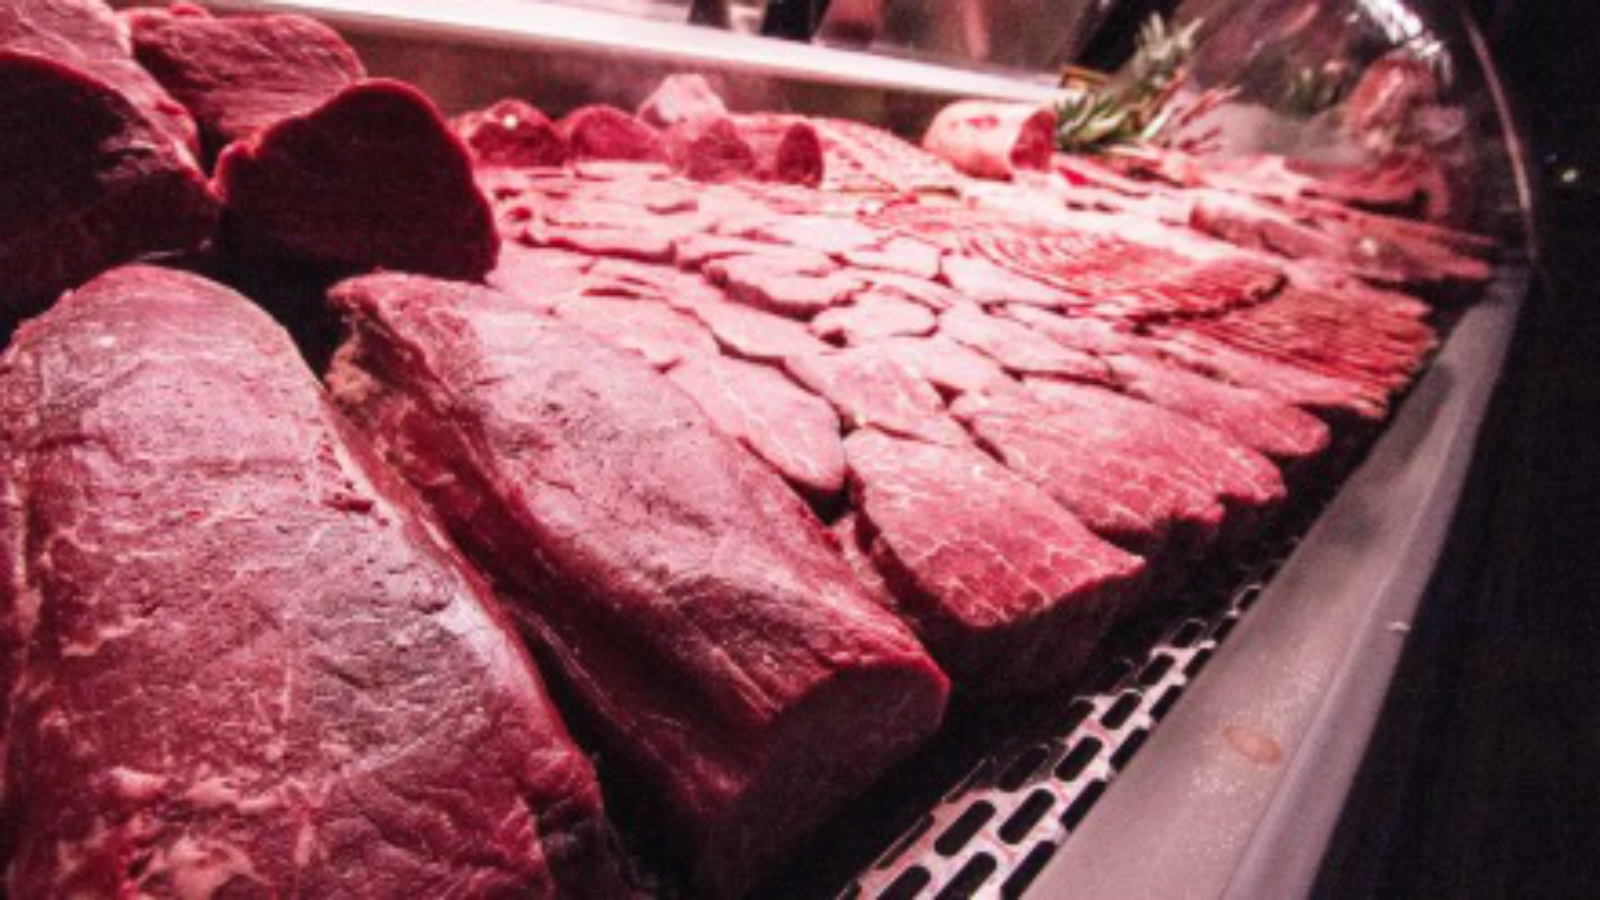 Red Meat Intake May Increase Risk of Early Death